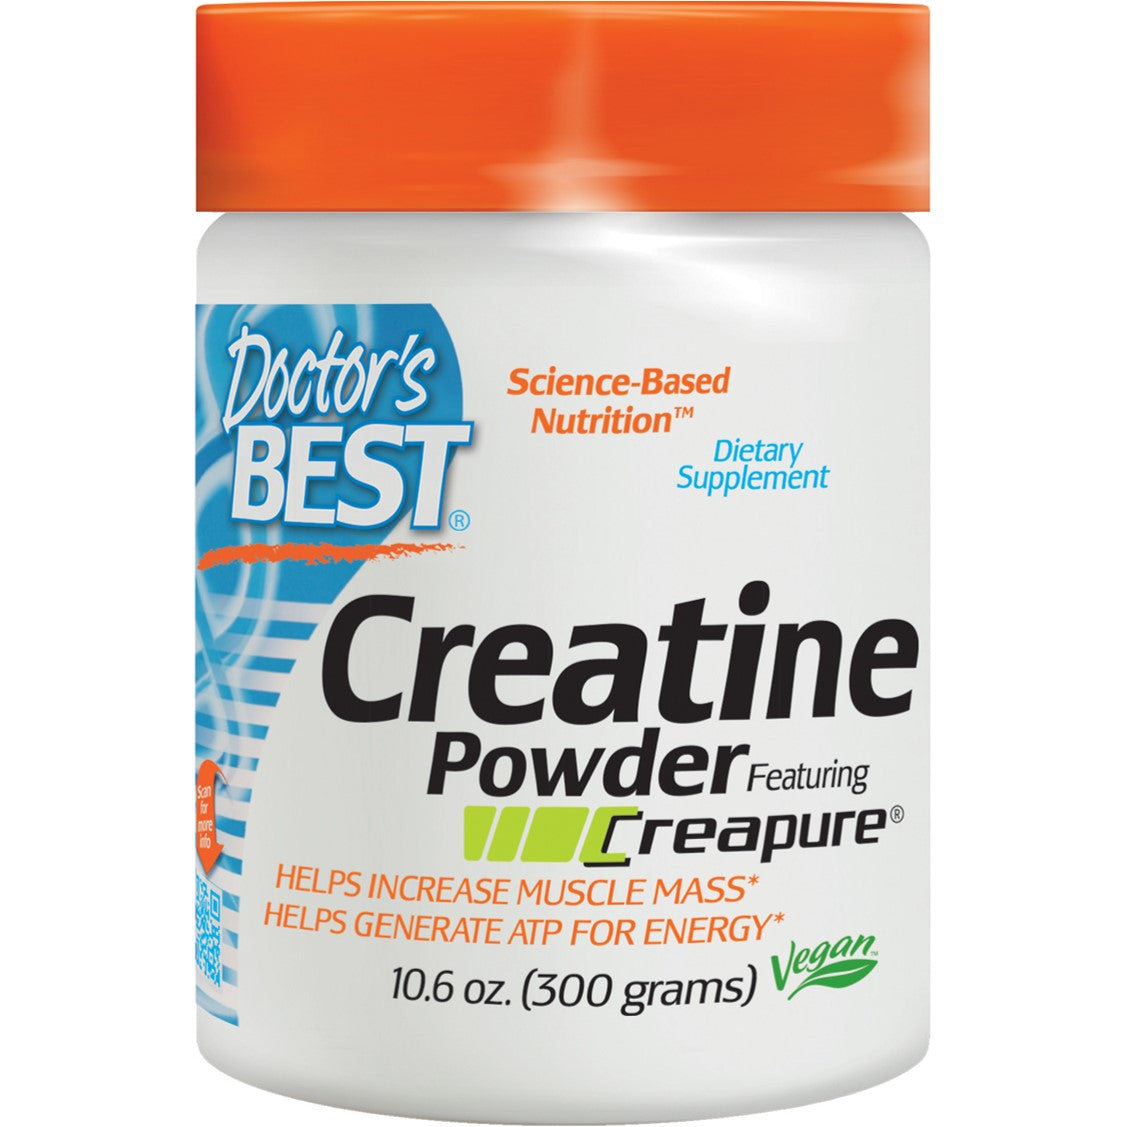 Doctor's Best Creatine Powder Featuring Creapure, 300 g.